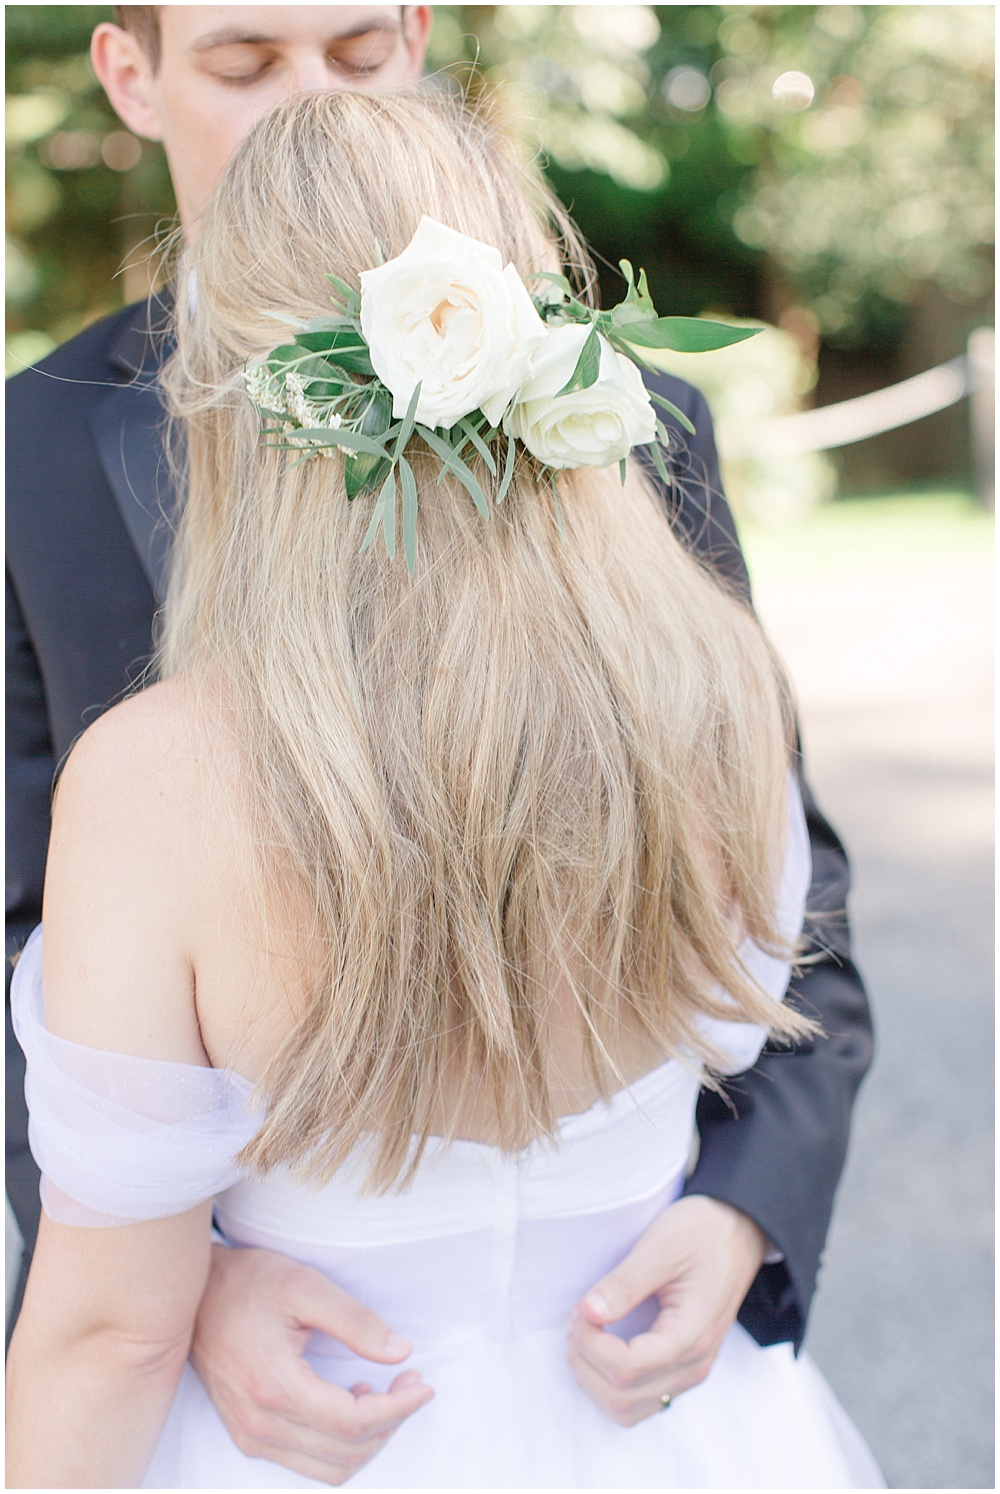 bridal hair floral| Sami Renee Photography + Jessica Dum Wedding Coordination